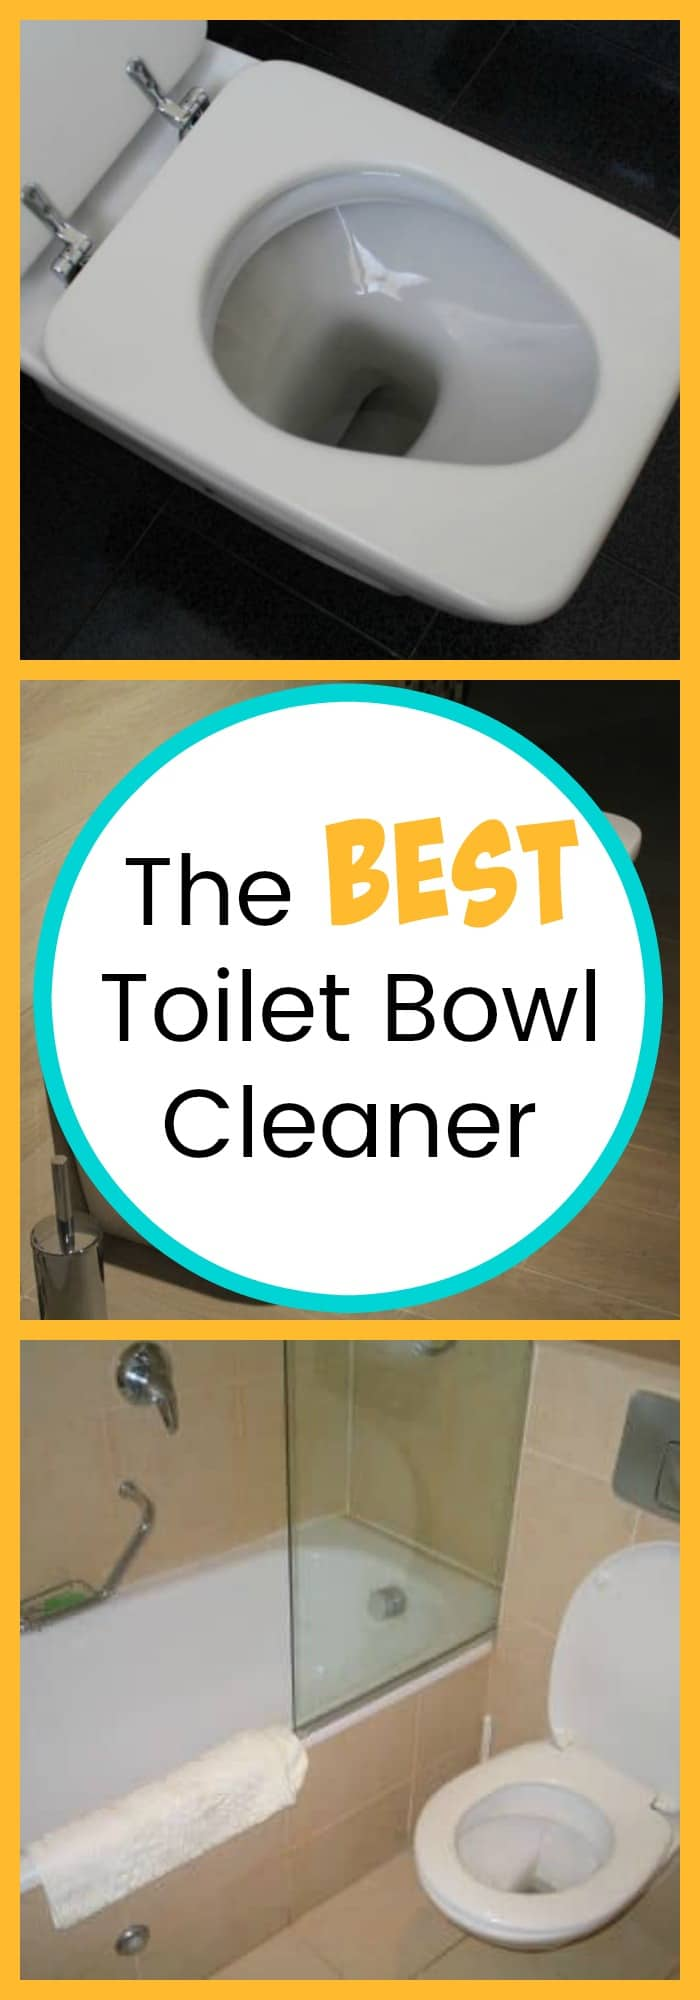 The Best Toilet Bowl Cleaner